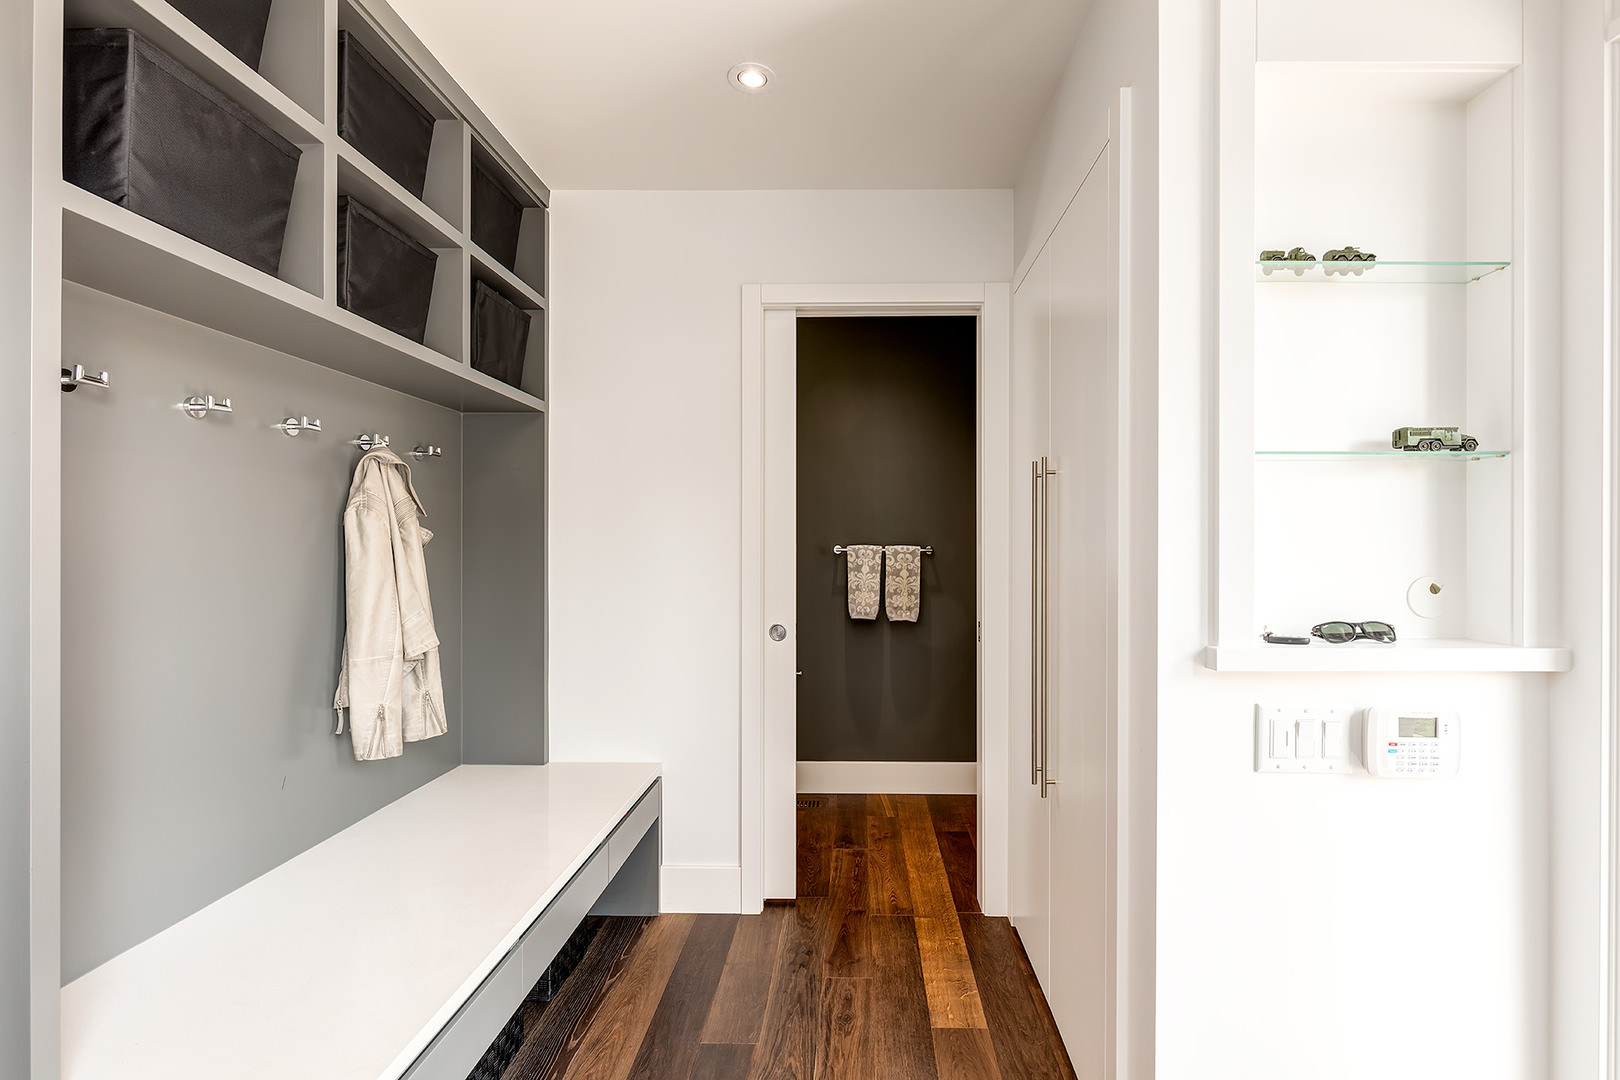 This is a walk through closet where you can hide all your coats and jackets. The floor is in glossy wood finish, a white, wide and lengthy folding counter on the side is present, storage and cabinets are provided for your clothing.